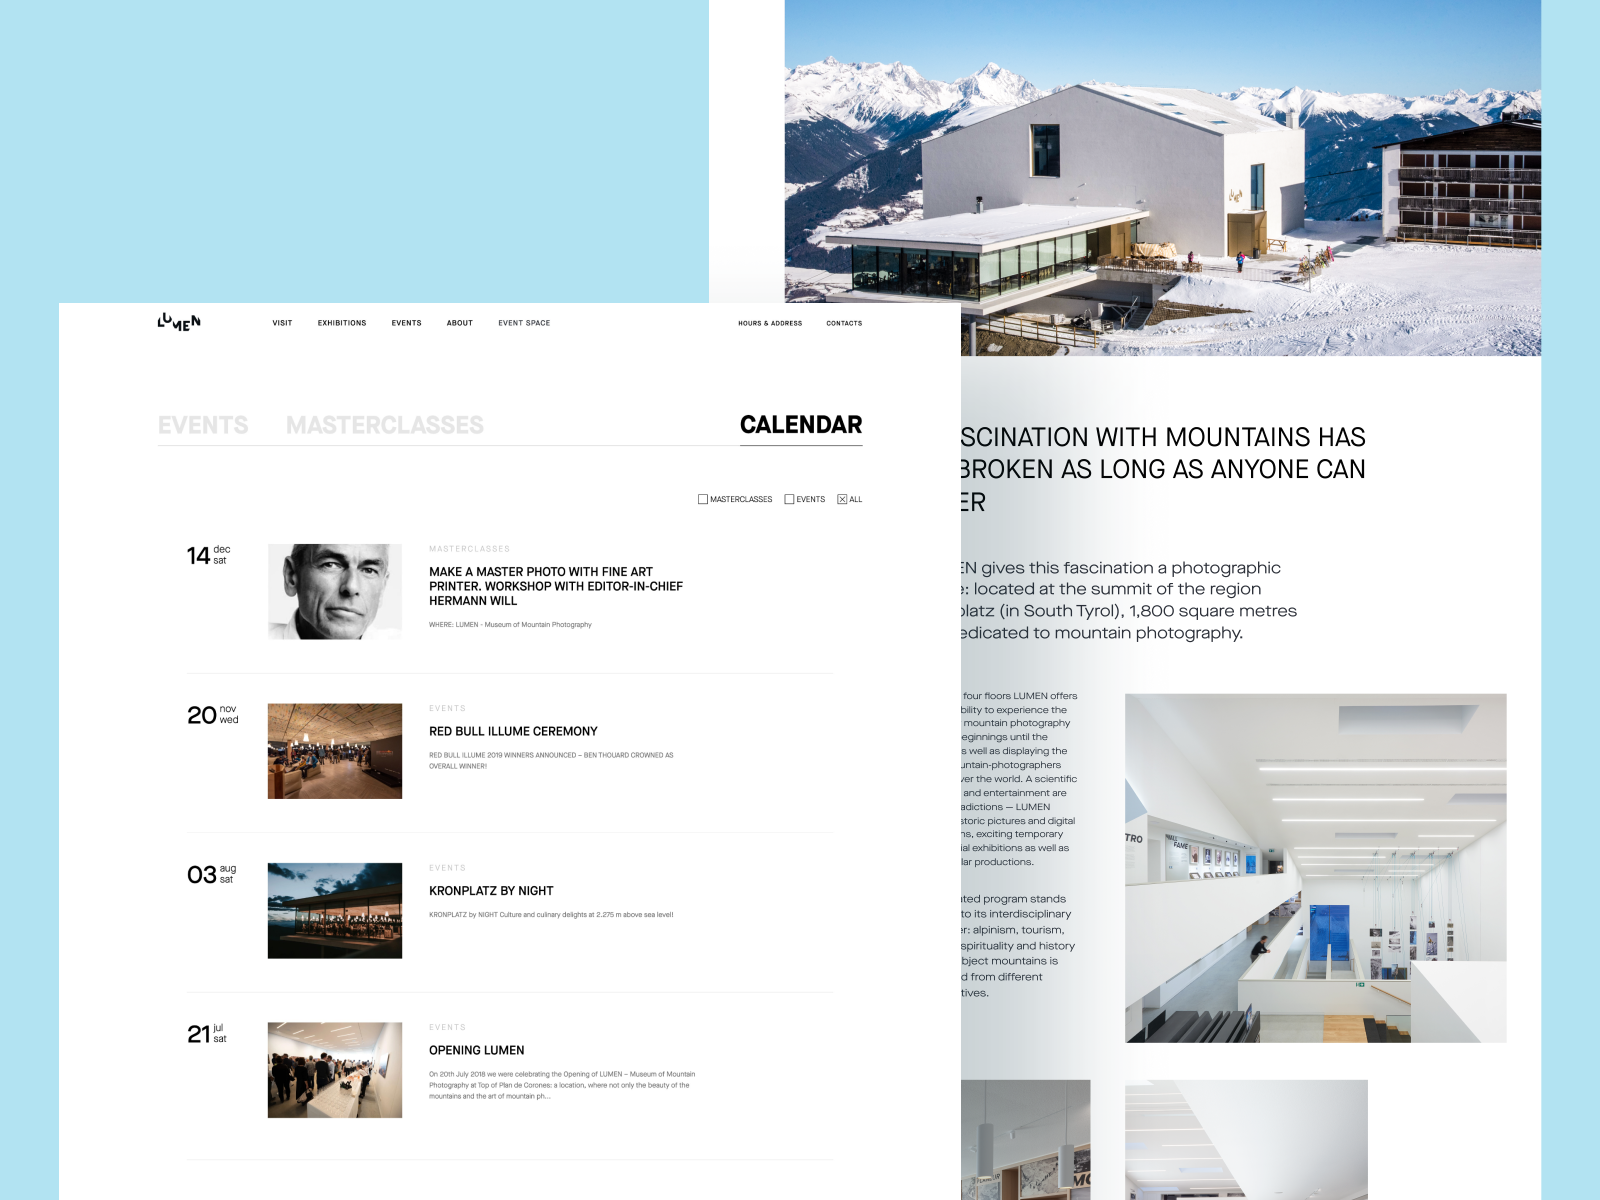 lumen museum website design